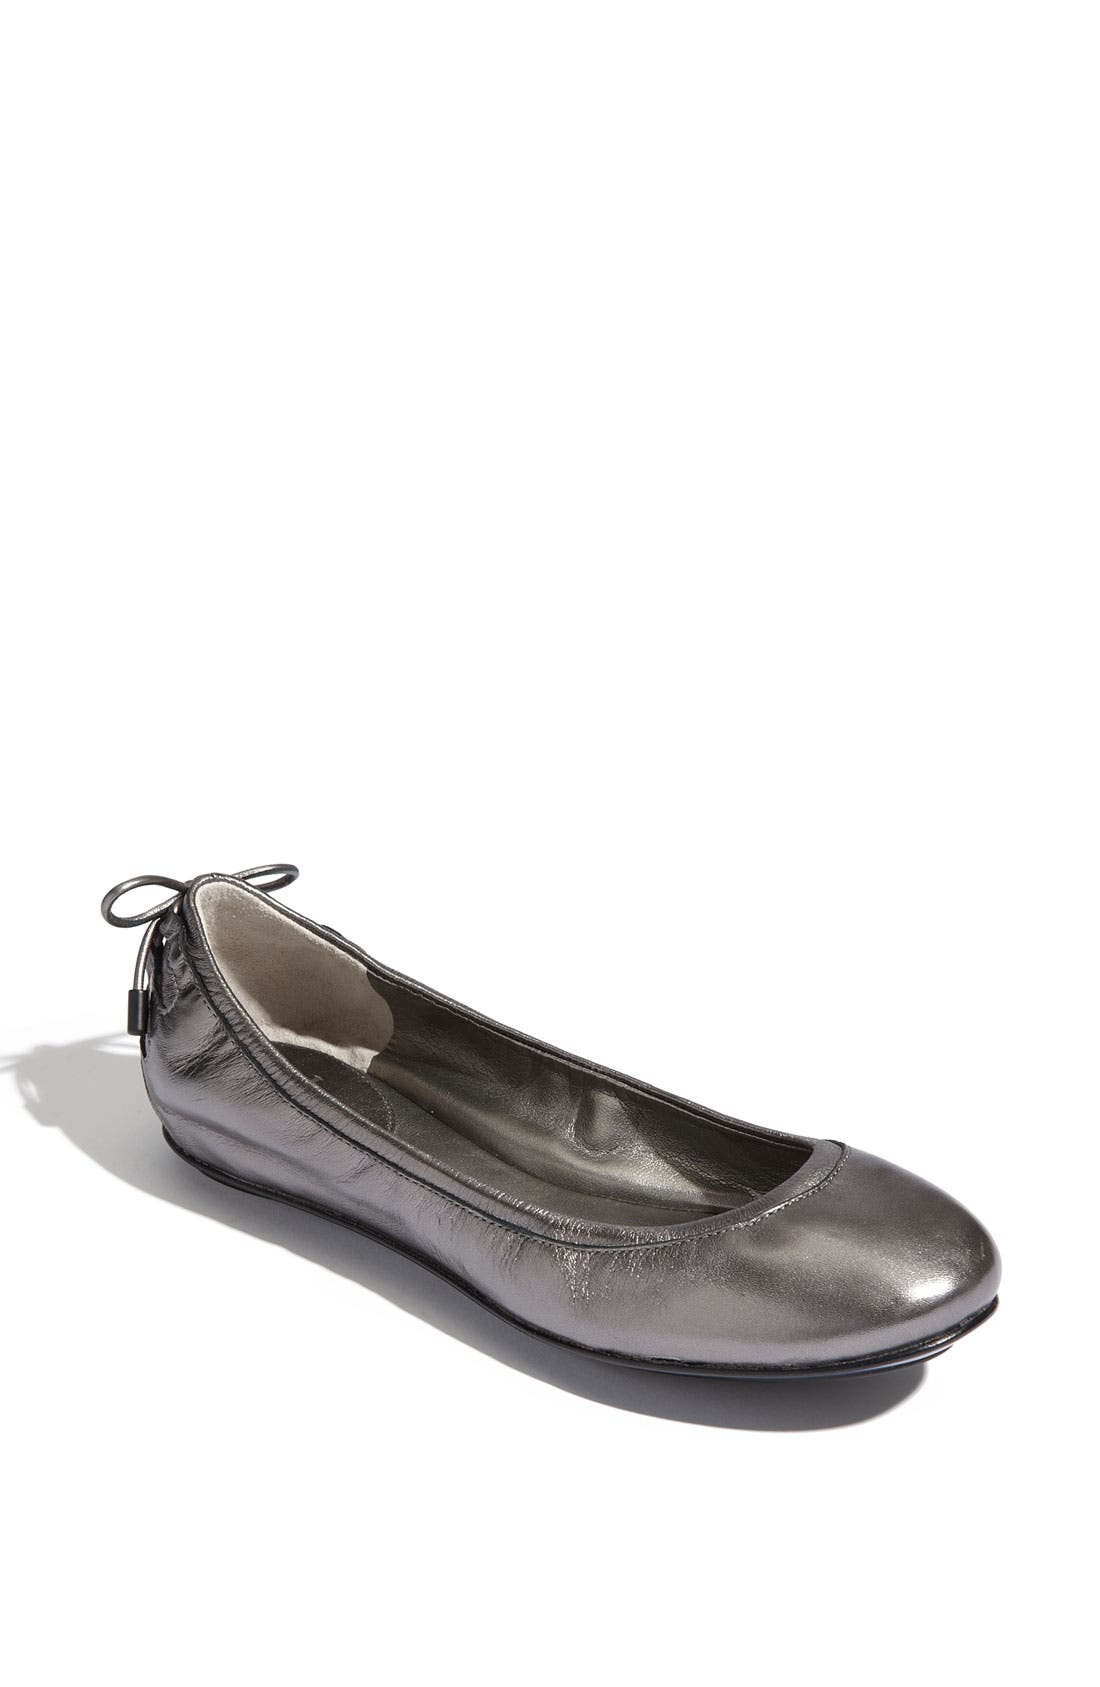 ,                             Maria Sharapova by Cole Haan 'Air Bacara' Flat,                             Main thumbnail 14, color,                             041